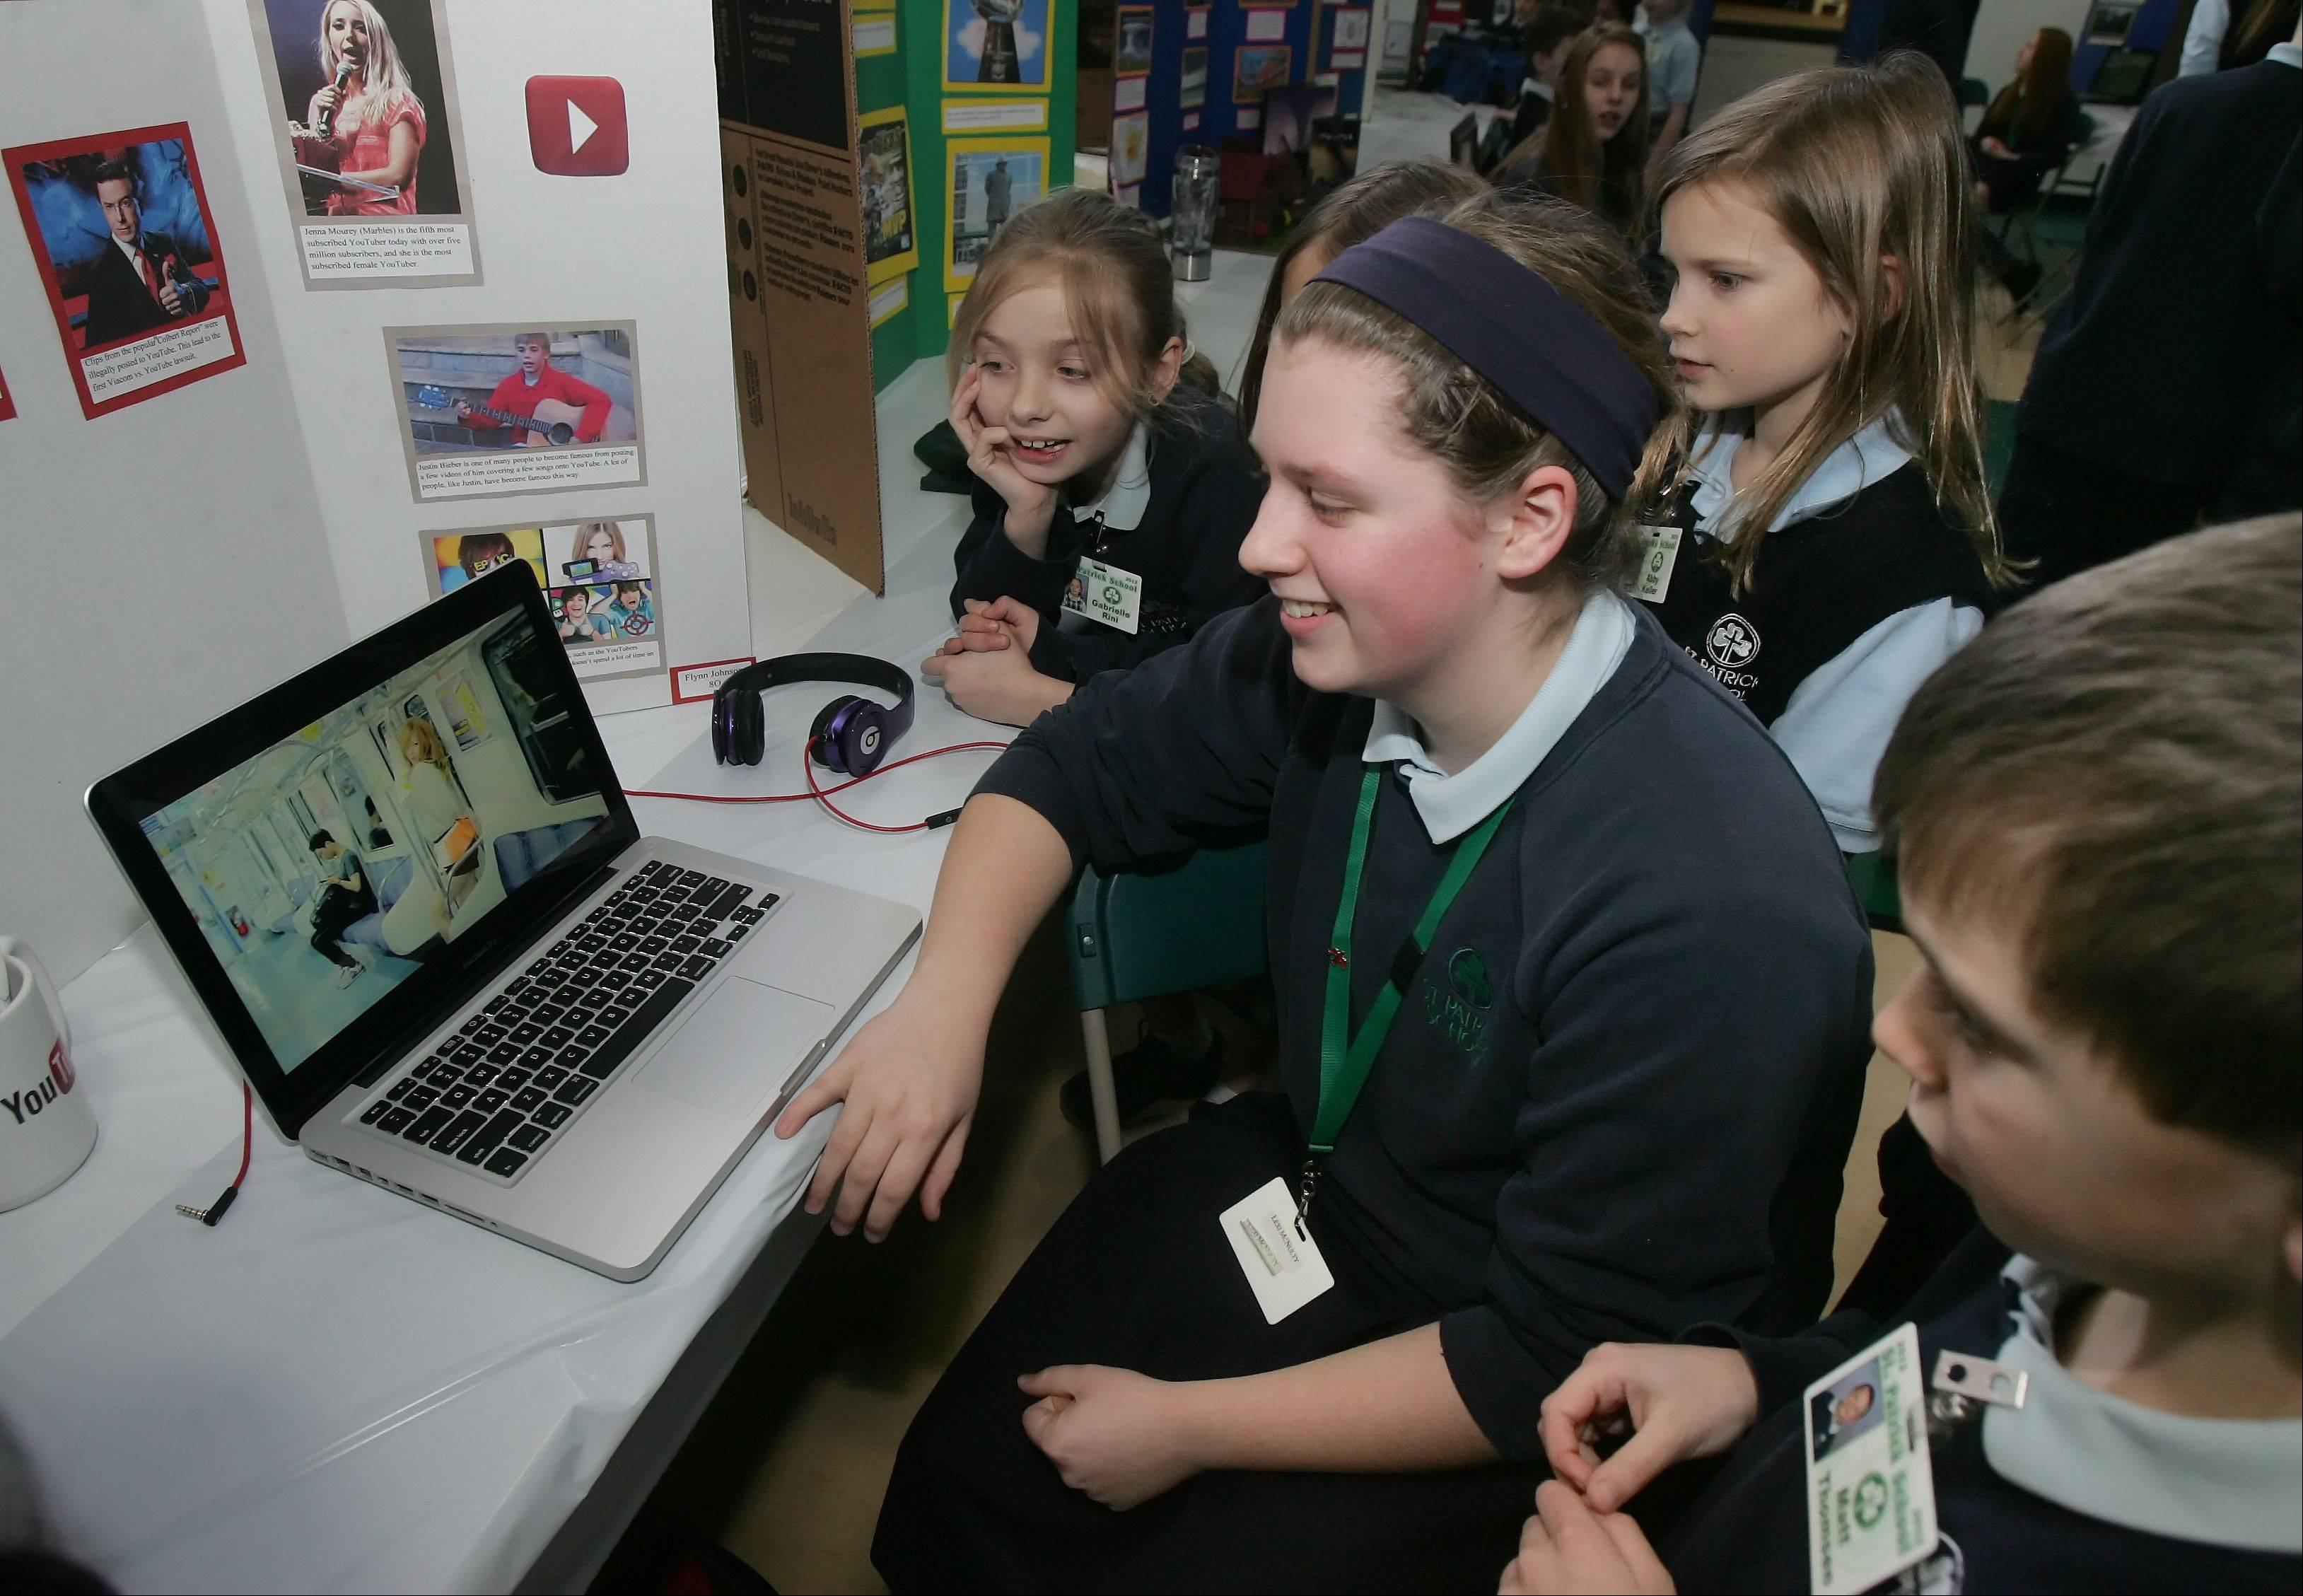 Eighth-grader Flynn Johnson shows videos to third-graders at her YouTube exhibit during the Academic Fair at St. Patrick Catholic School in Wadsworth.